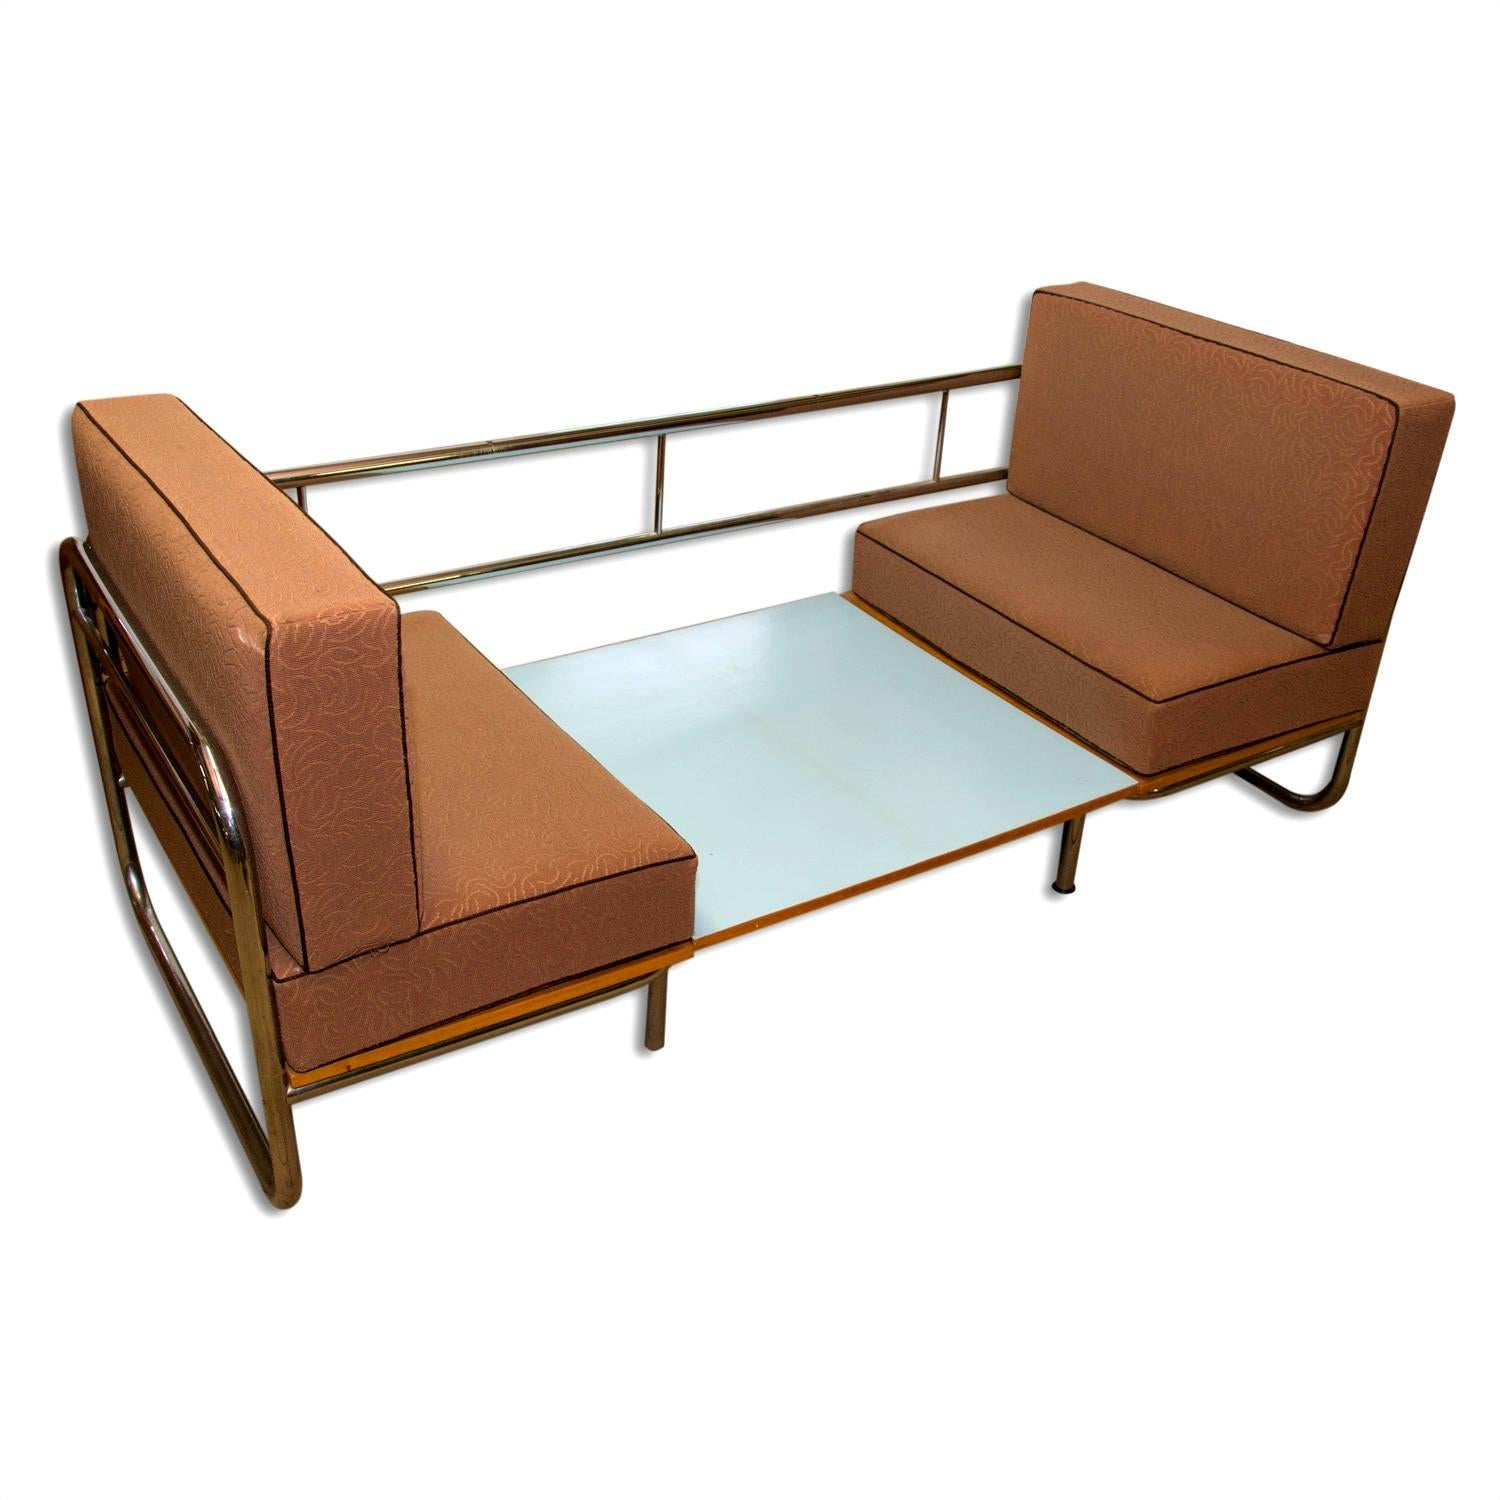 Bauhaus Exceptional Functionalist Multipurpose Seating Set Sofa Bed, 1950s  For Sale